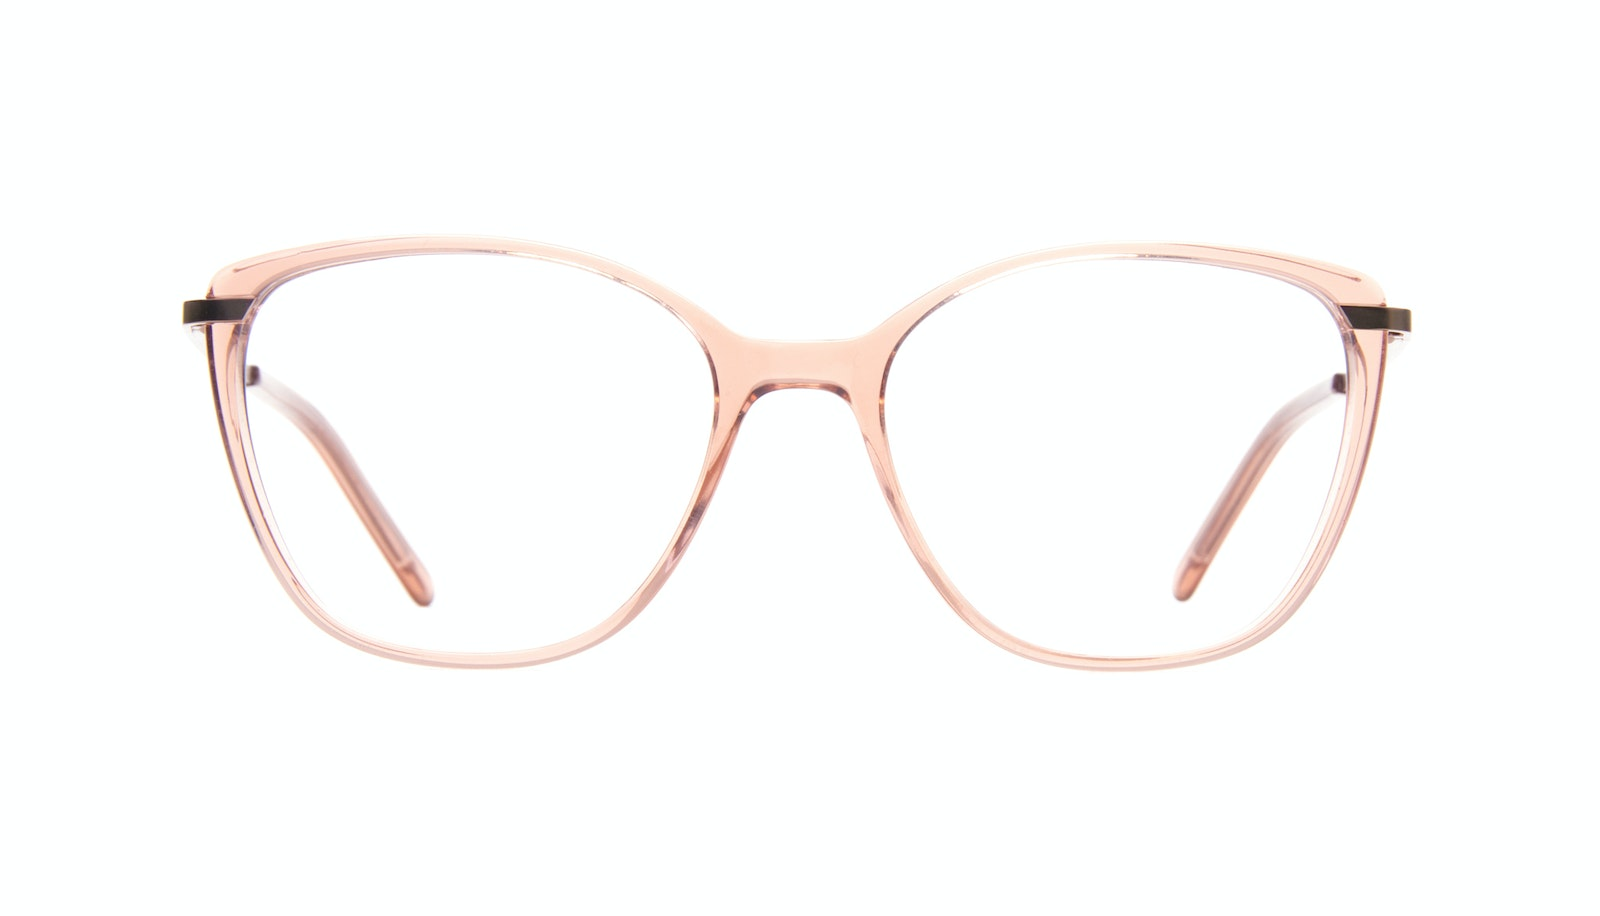 Affordable Fashion Glasses Rectangle Square Eyeglasses Women Illusion M Rose